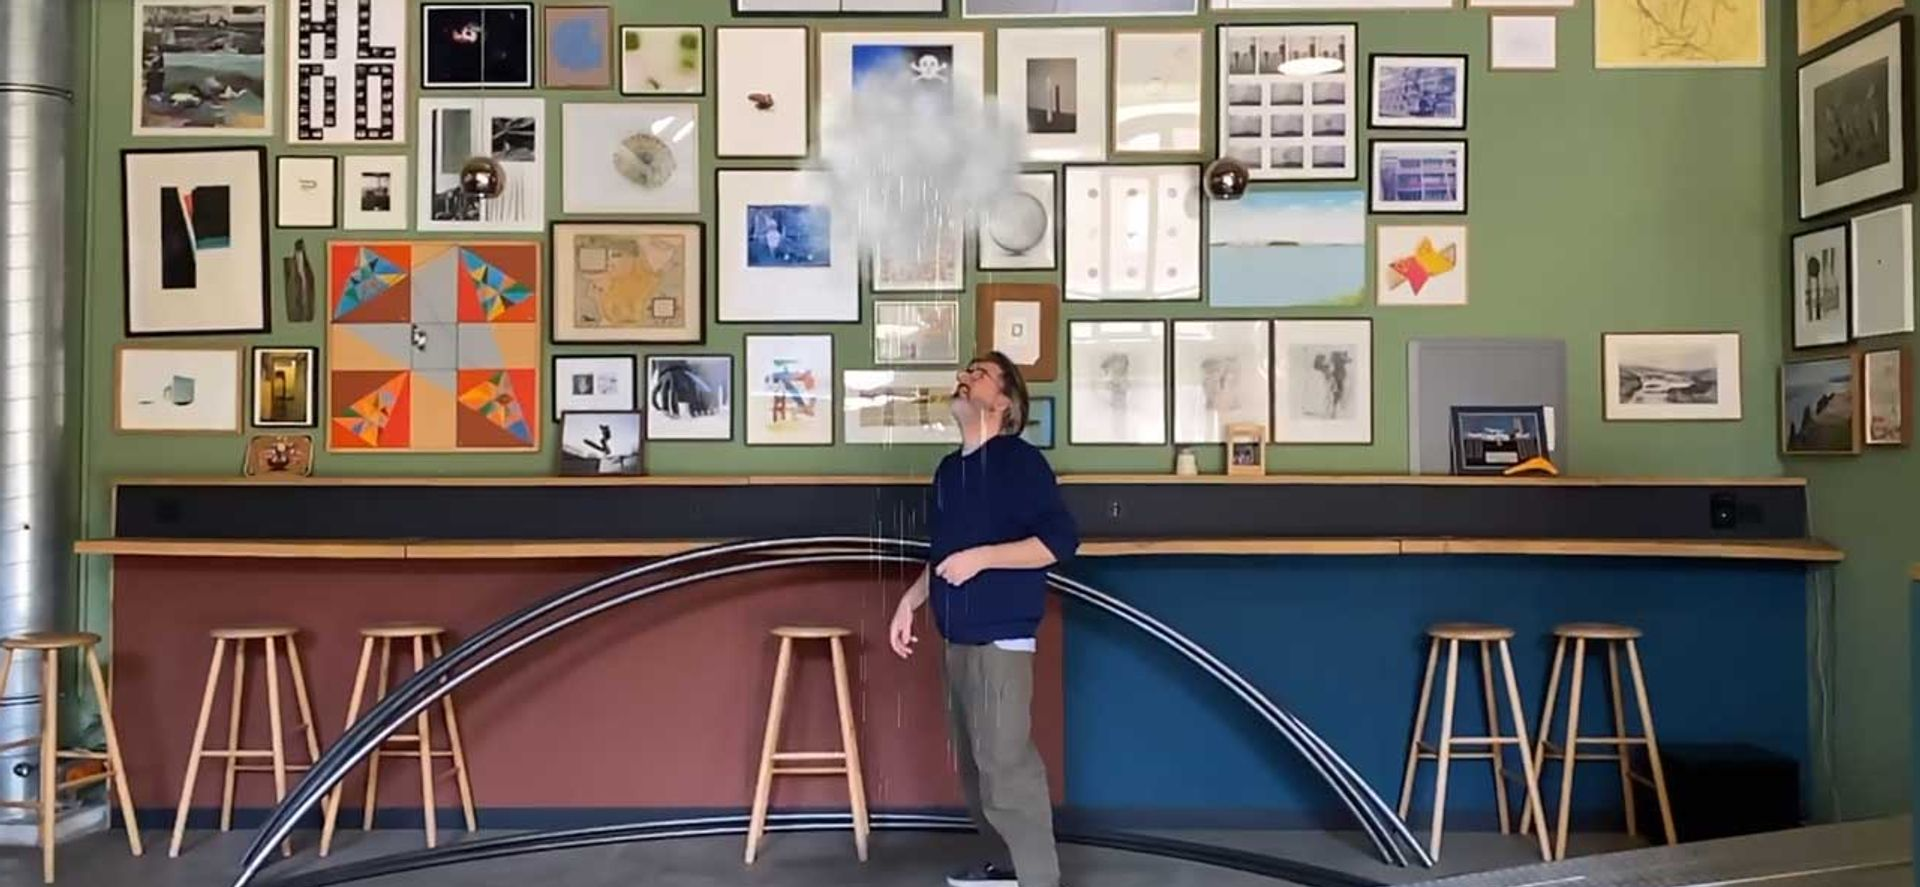 The artist Olafur Eliasson interacts with the cloud feature on his augmented reality app Wunderkammer Studio Olafur Eliasson